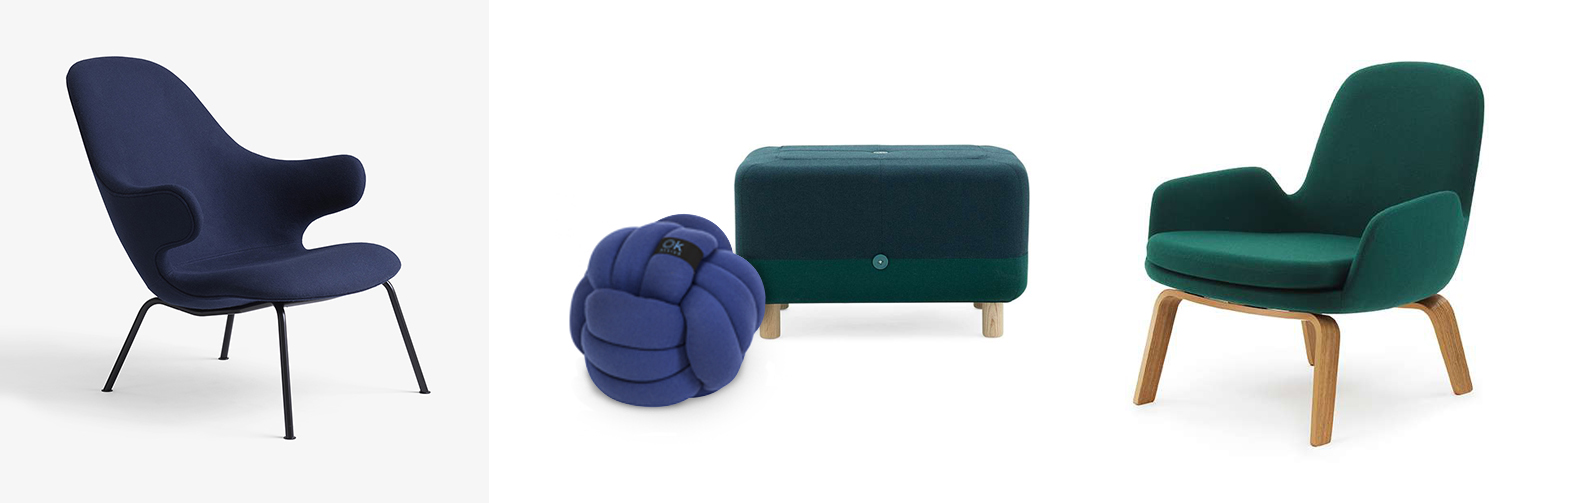 andtradition Catch Lounge JH14 Sessel, OK Design Chango Kissen, Normann Copenhagen Sumo Pouf Hocker und Normann Copenhagen Era Loungesessel